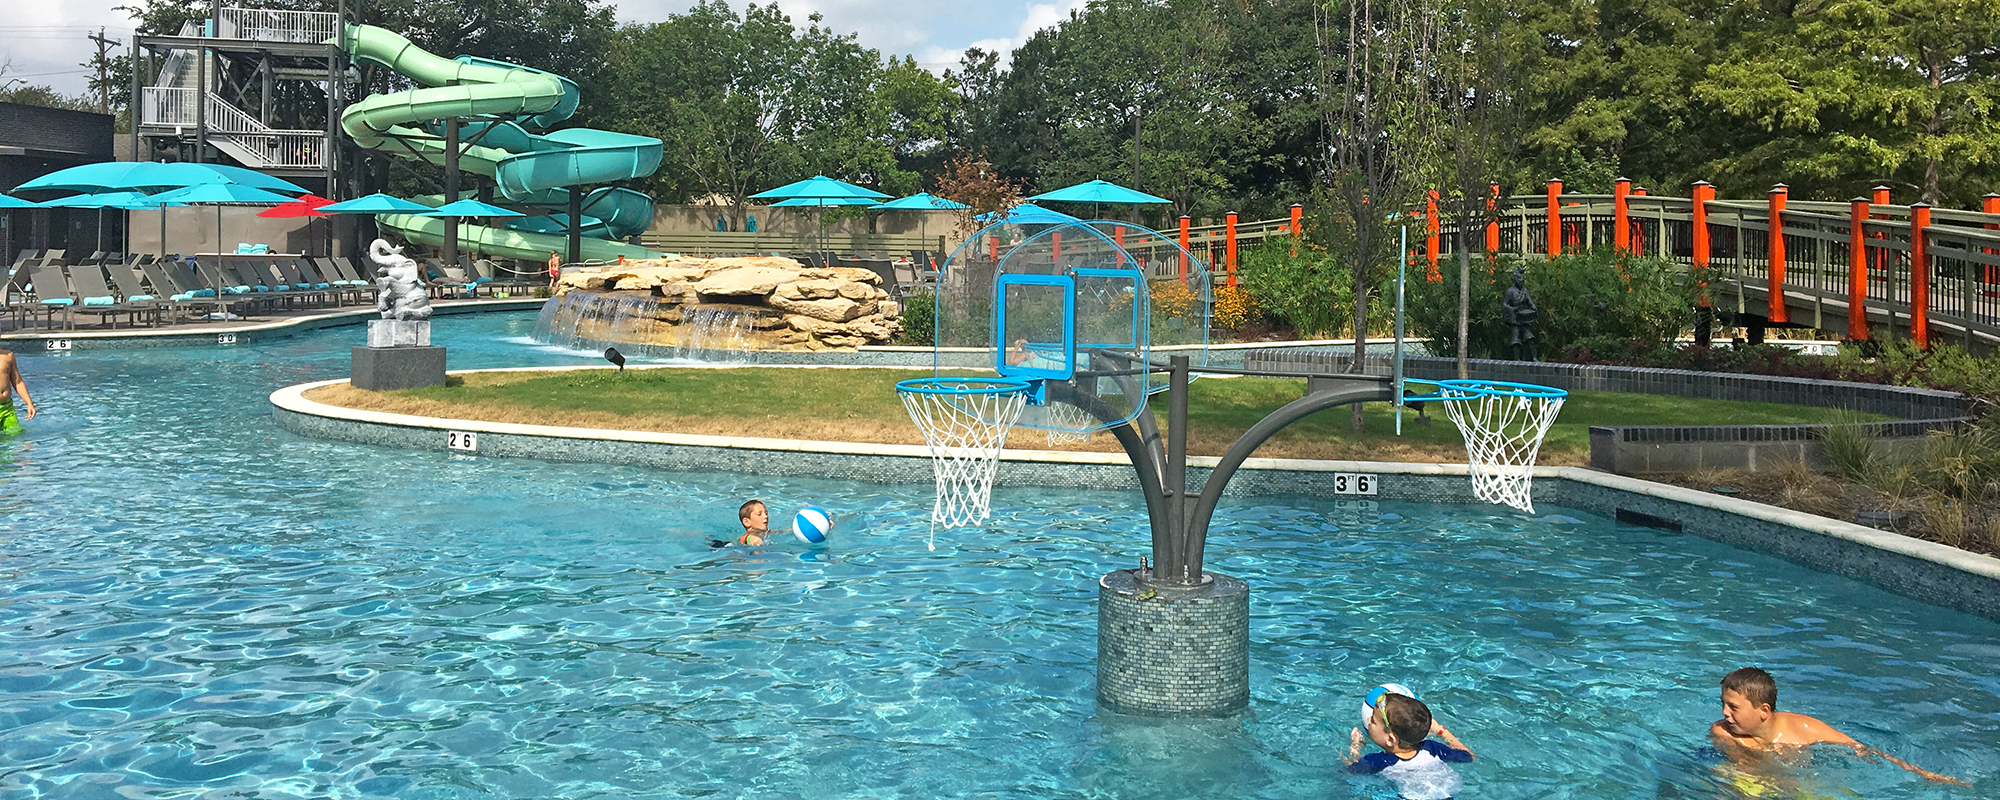 Kids playing at a basketball hoop in a pool